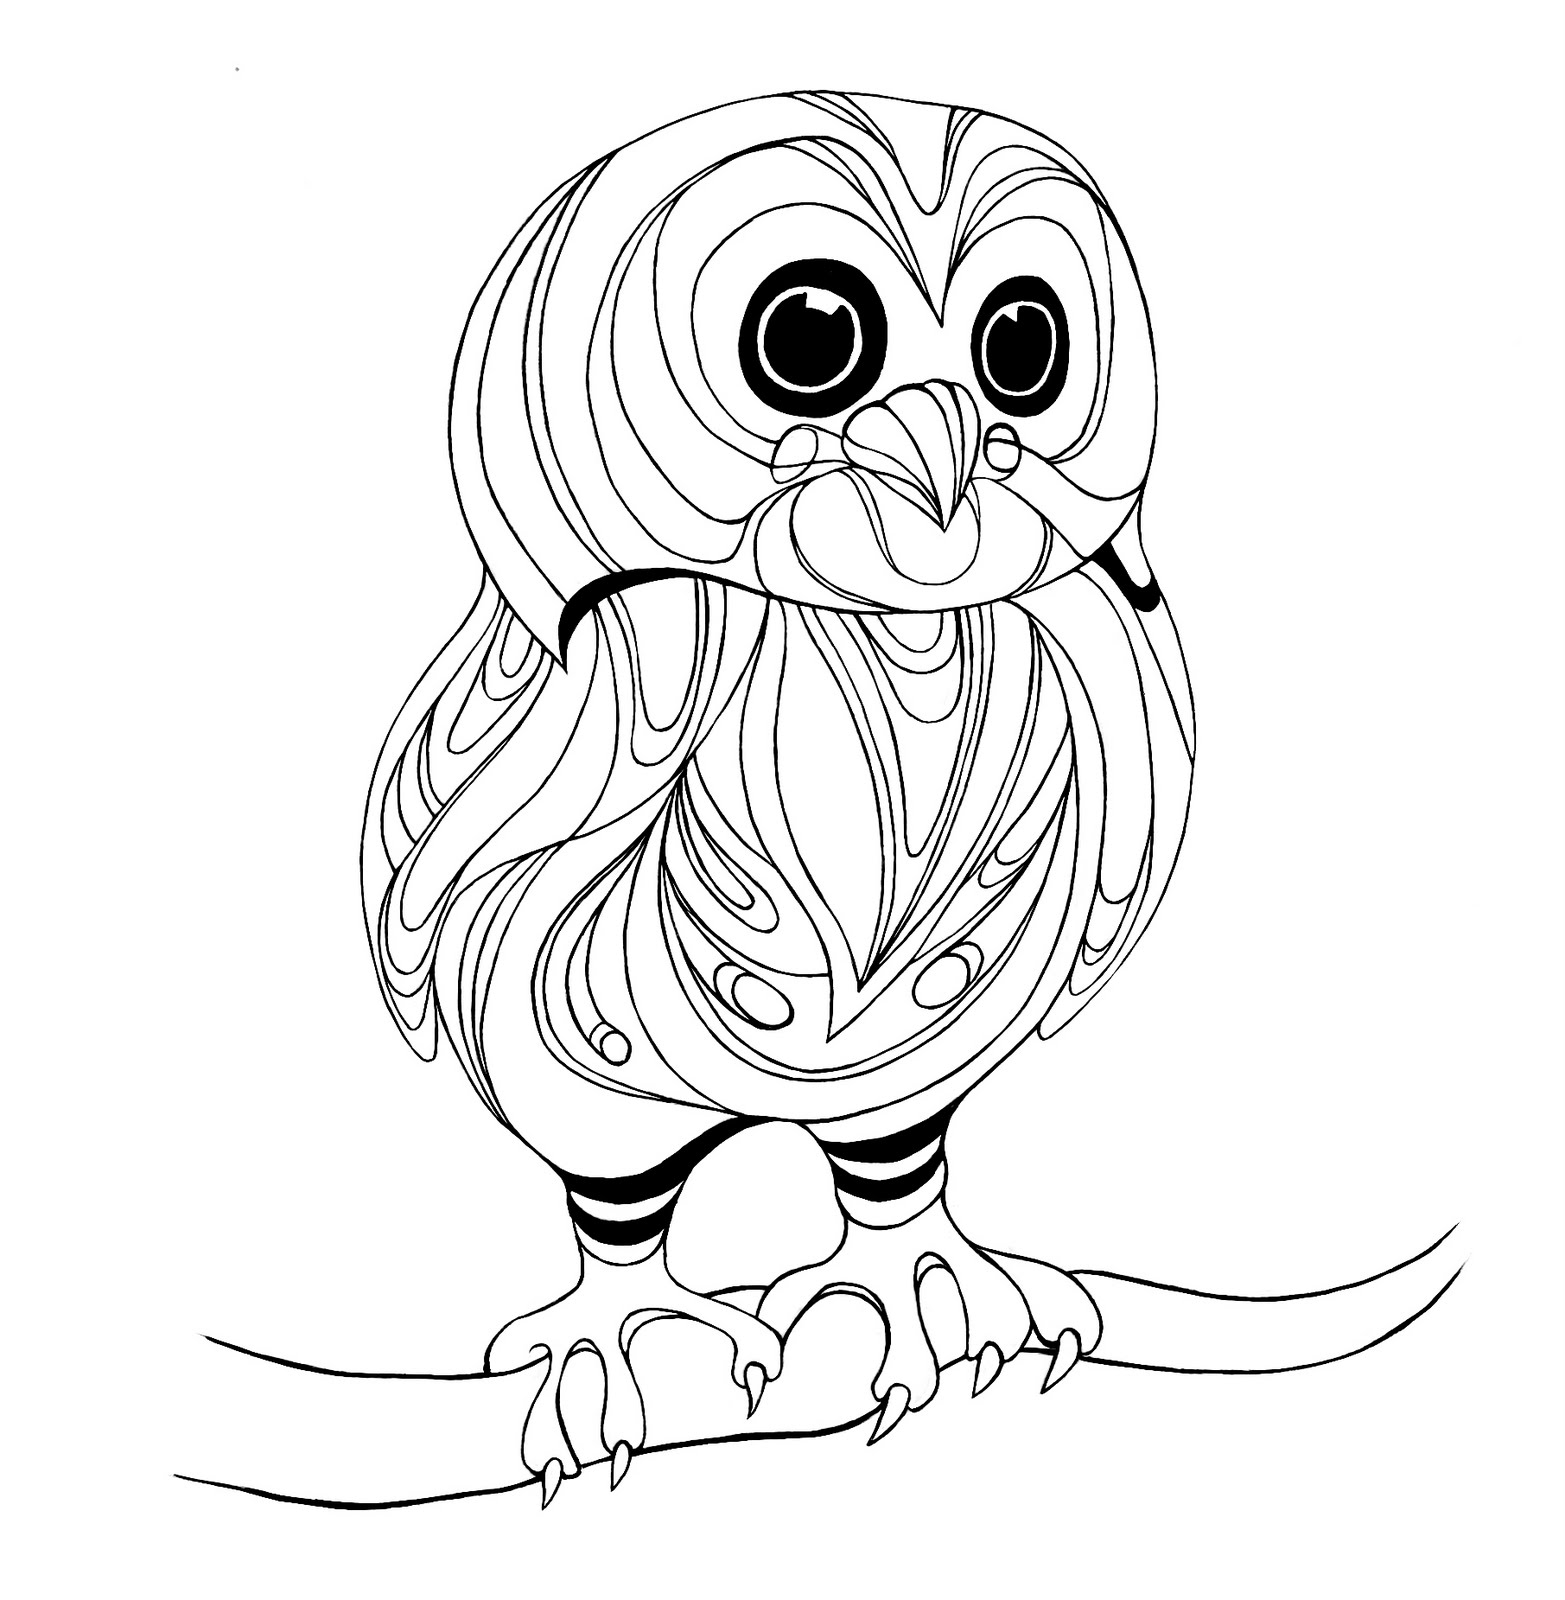 owl print out coloring pages best photos of cute owl template printable printable owl print pages out coloring owl